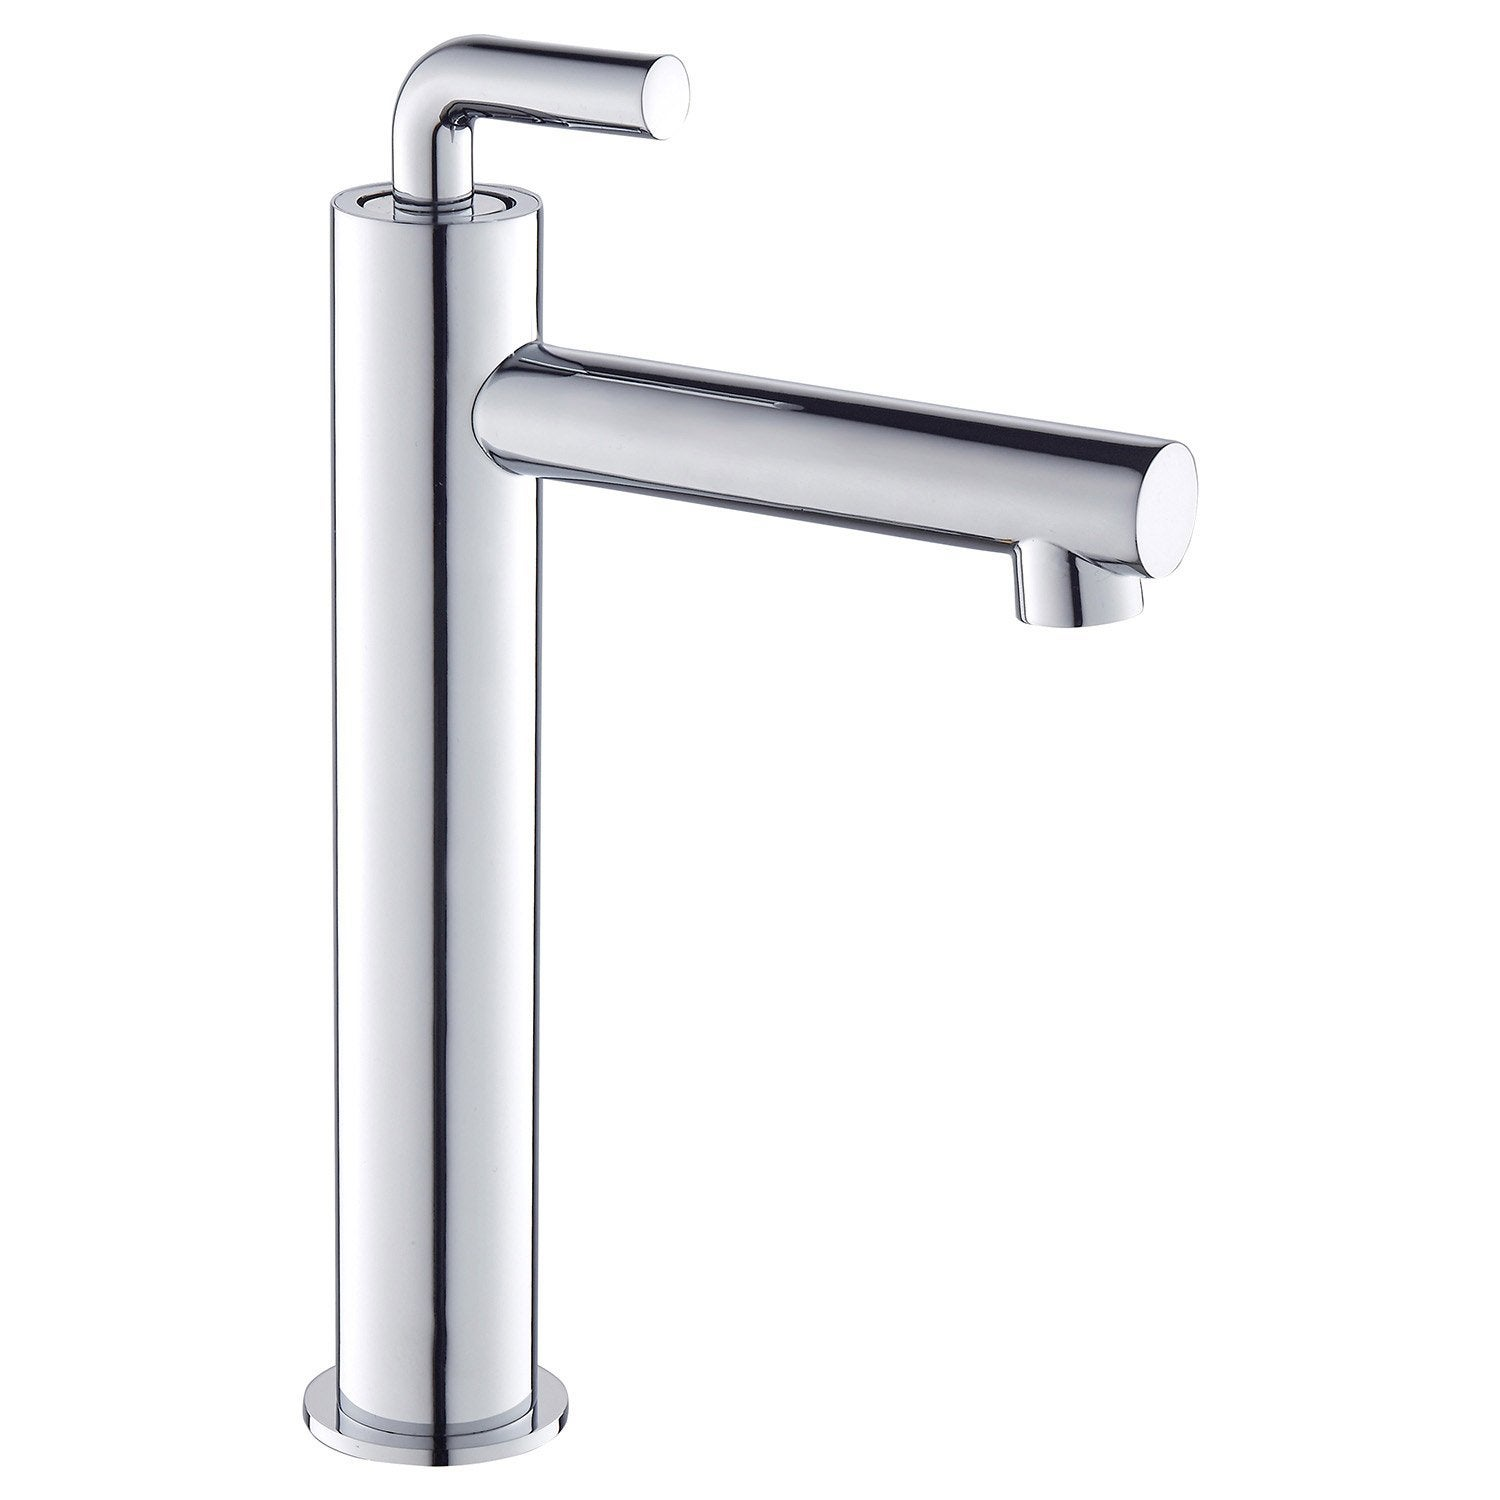 Leroy merlin robinet lavabo awesome interesting vasque de for Mitigeur salle de bain leroy merlin